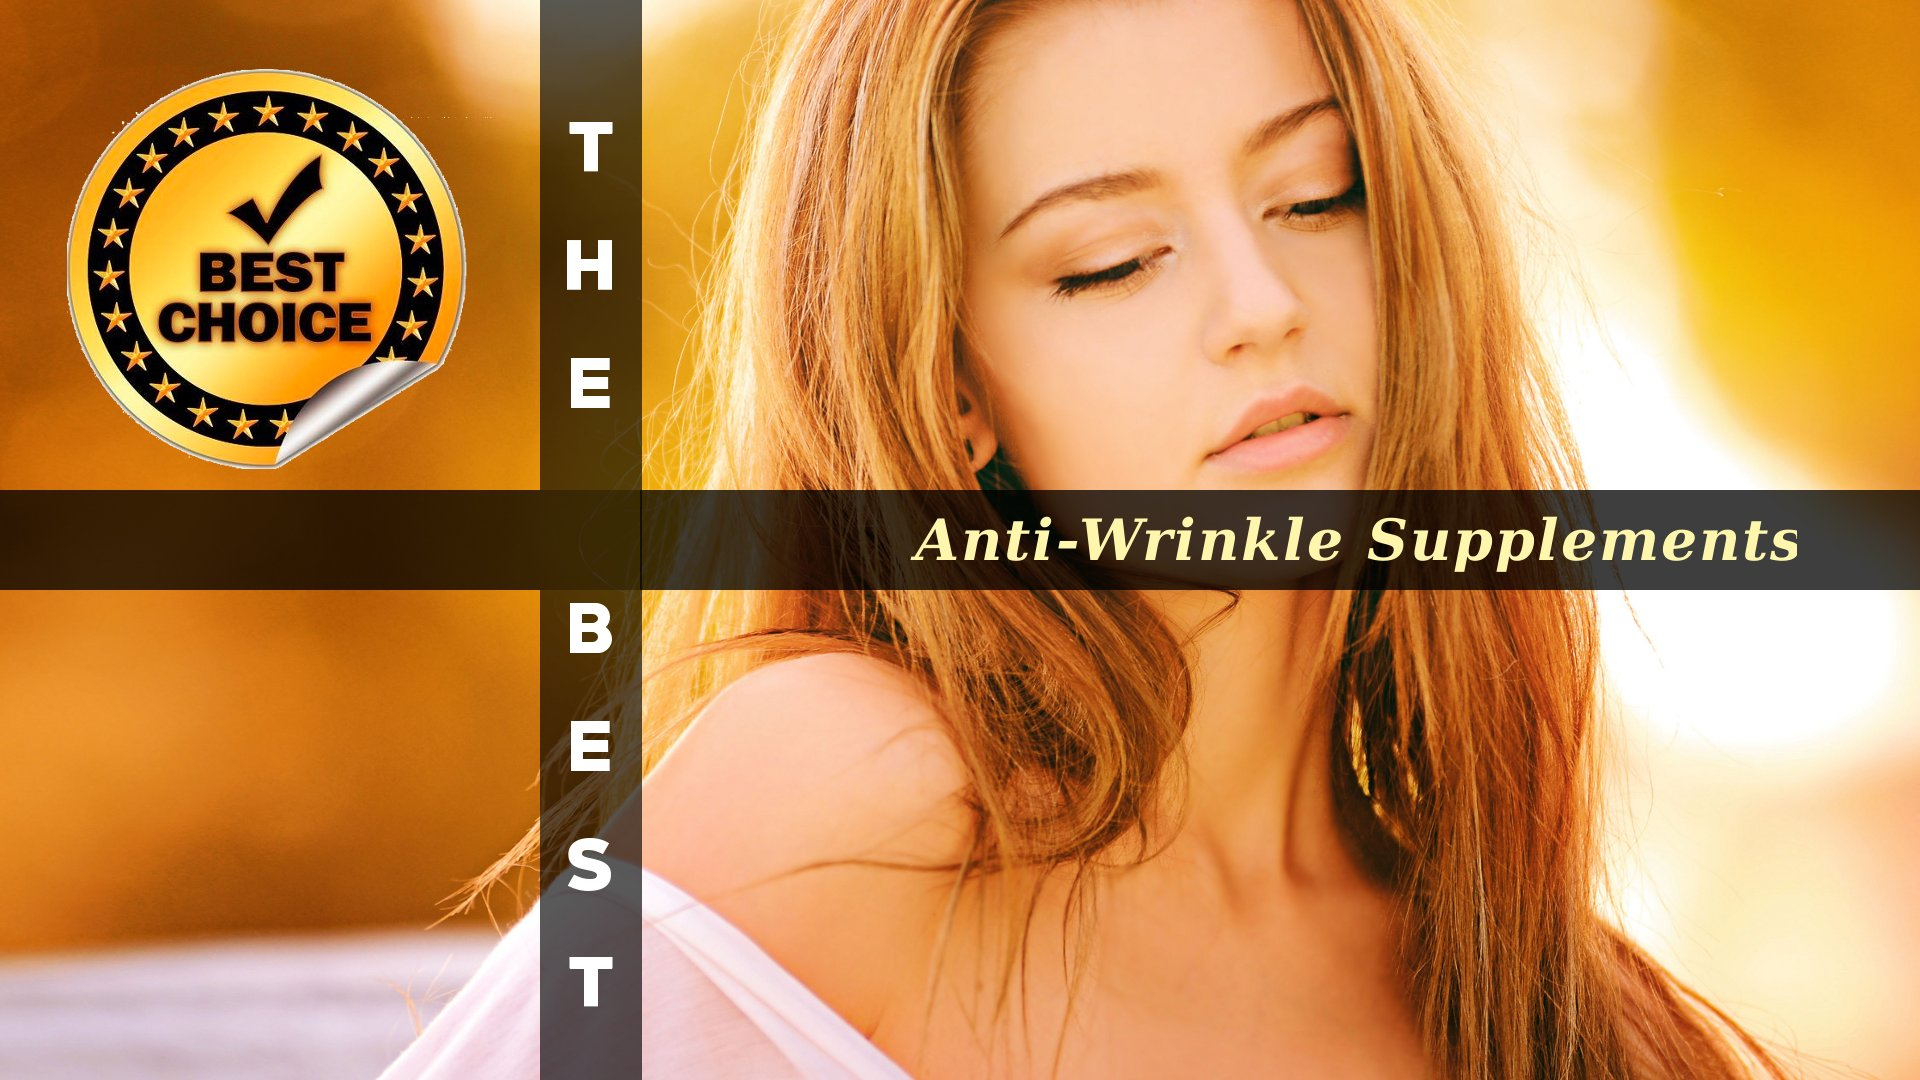 Anti-Wrinkle Supplements